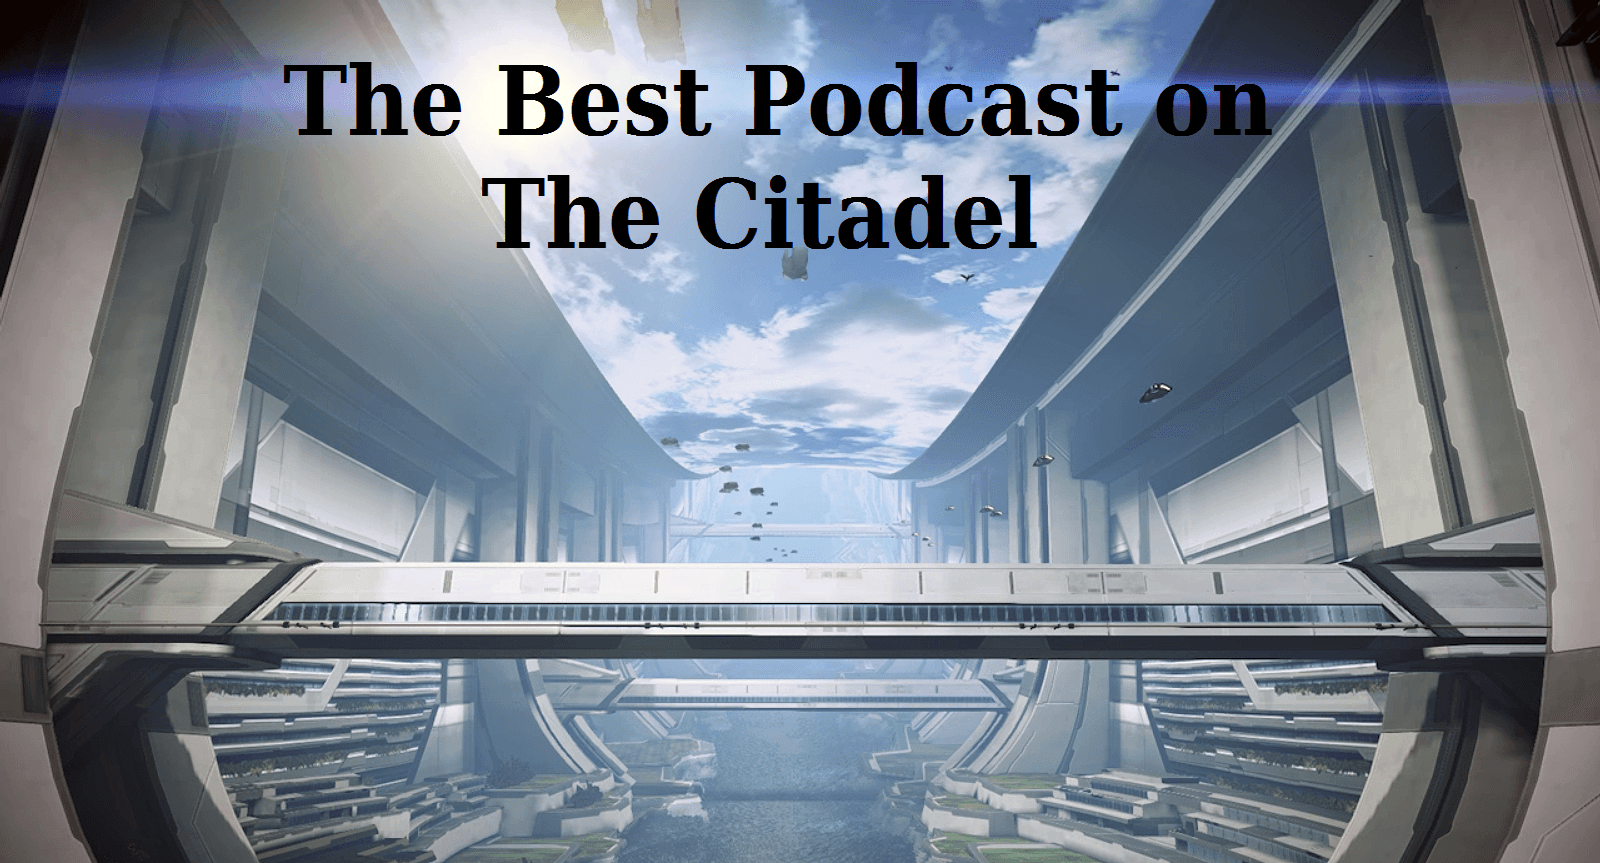 The Best Podcast on the Citadel, Ep. 33